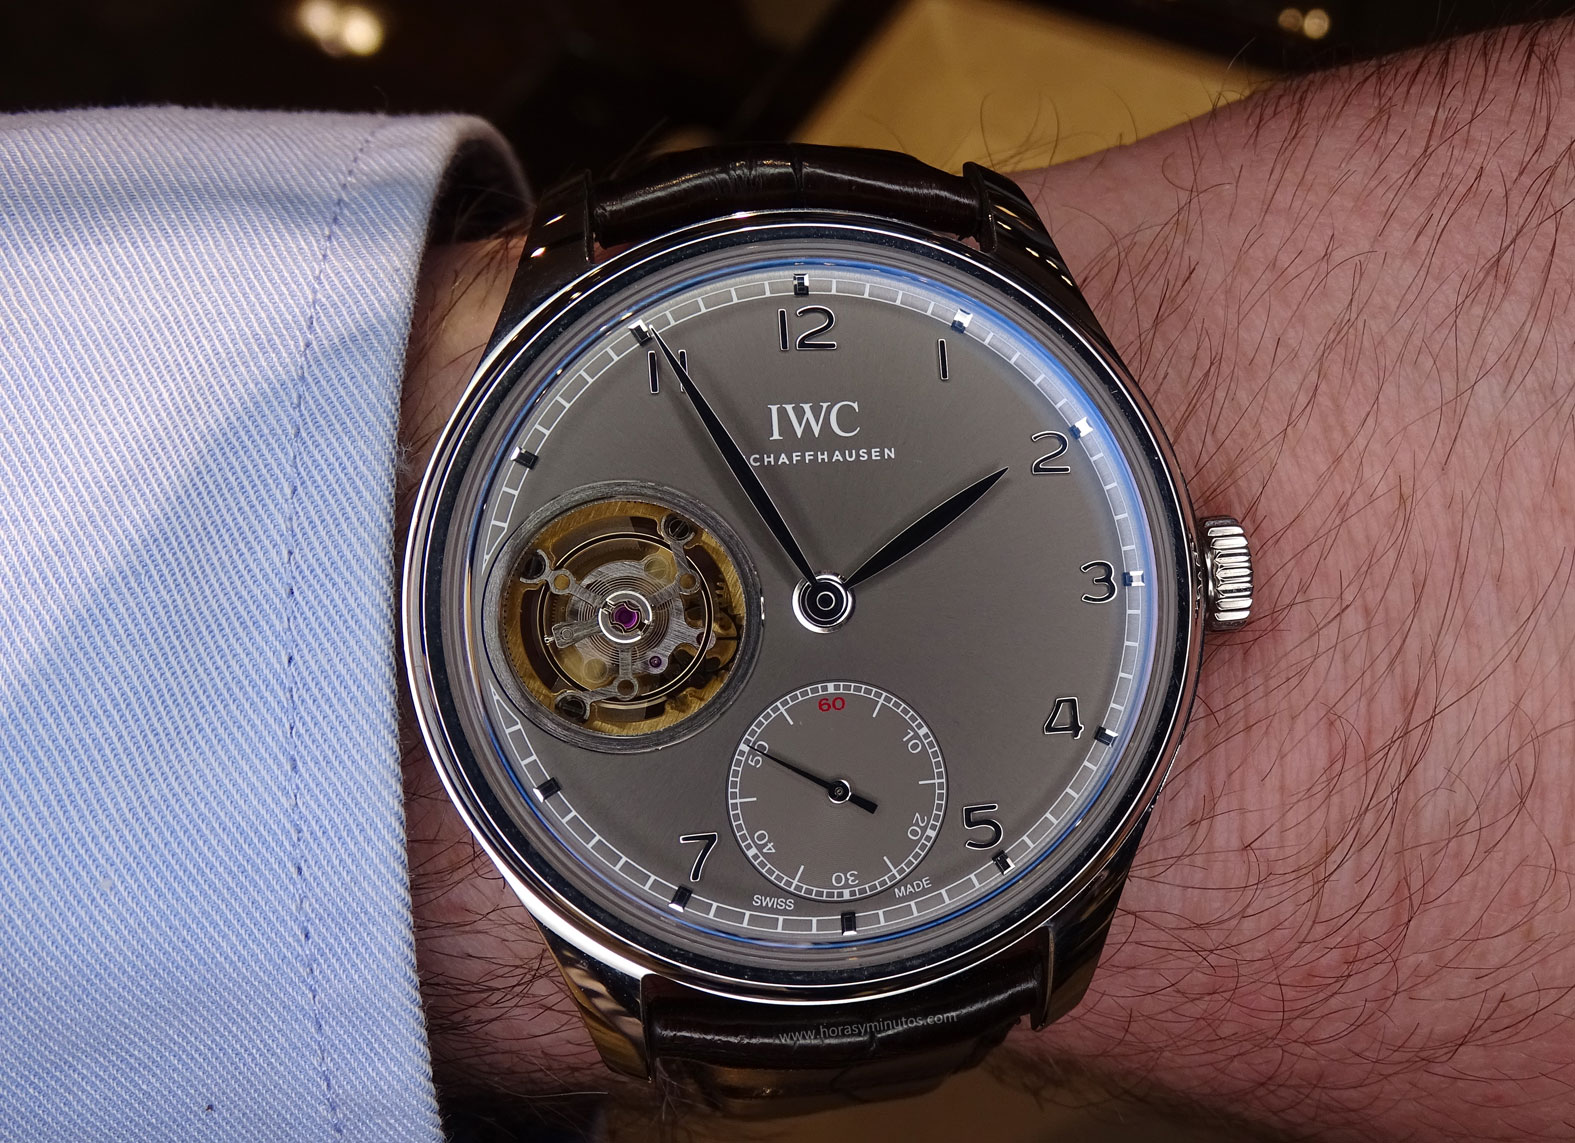 IWC Portugues Tourbillon Manual pizarra en la muñeca 2